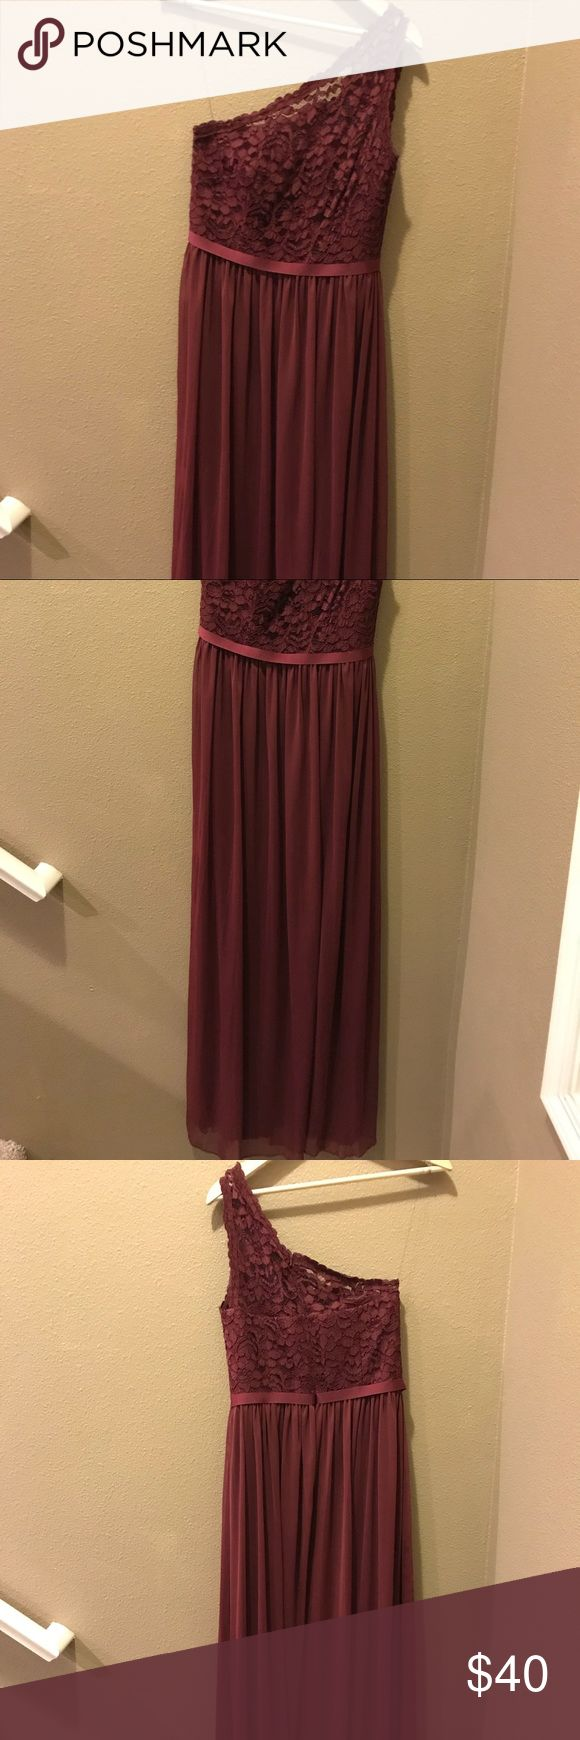 David's Bridal Floor Length Wine Colored Dress One shouldered dress. Top portion of the dress is lace, then bottom half is a chiffon material. There is a leg slit down the middle of the dress. The dress is in very good condition, only worn once! David's Bridal Dresses One Shoulder